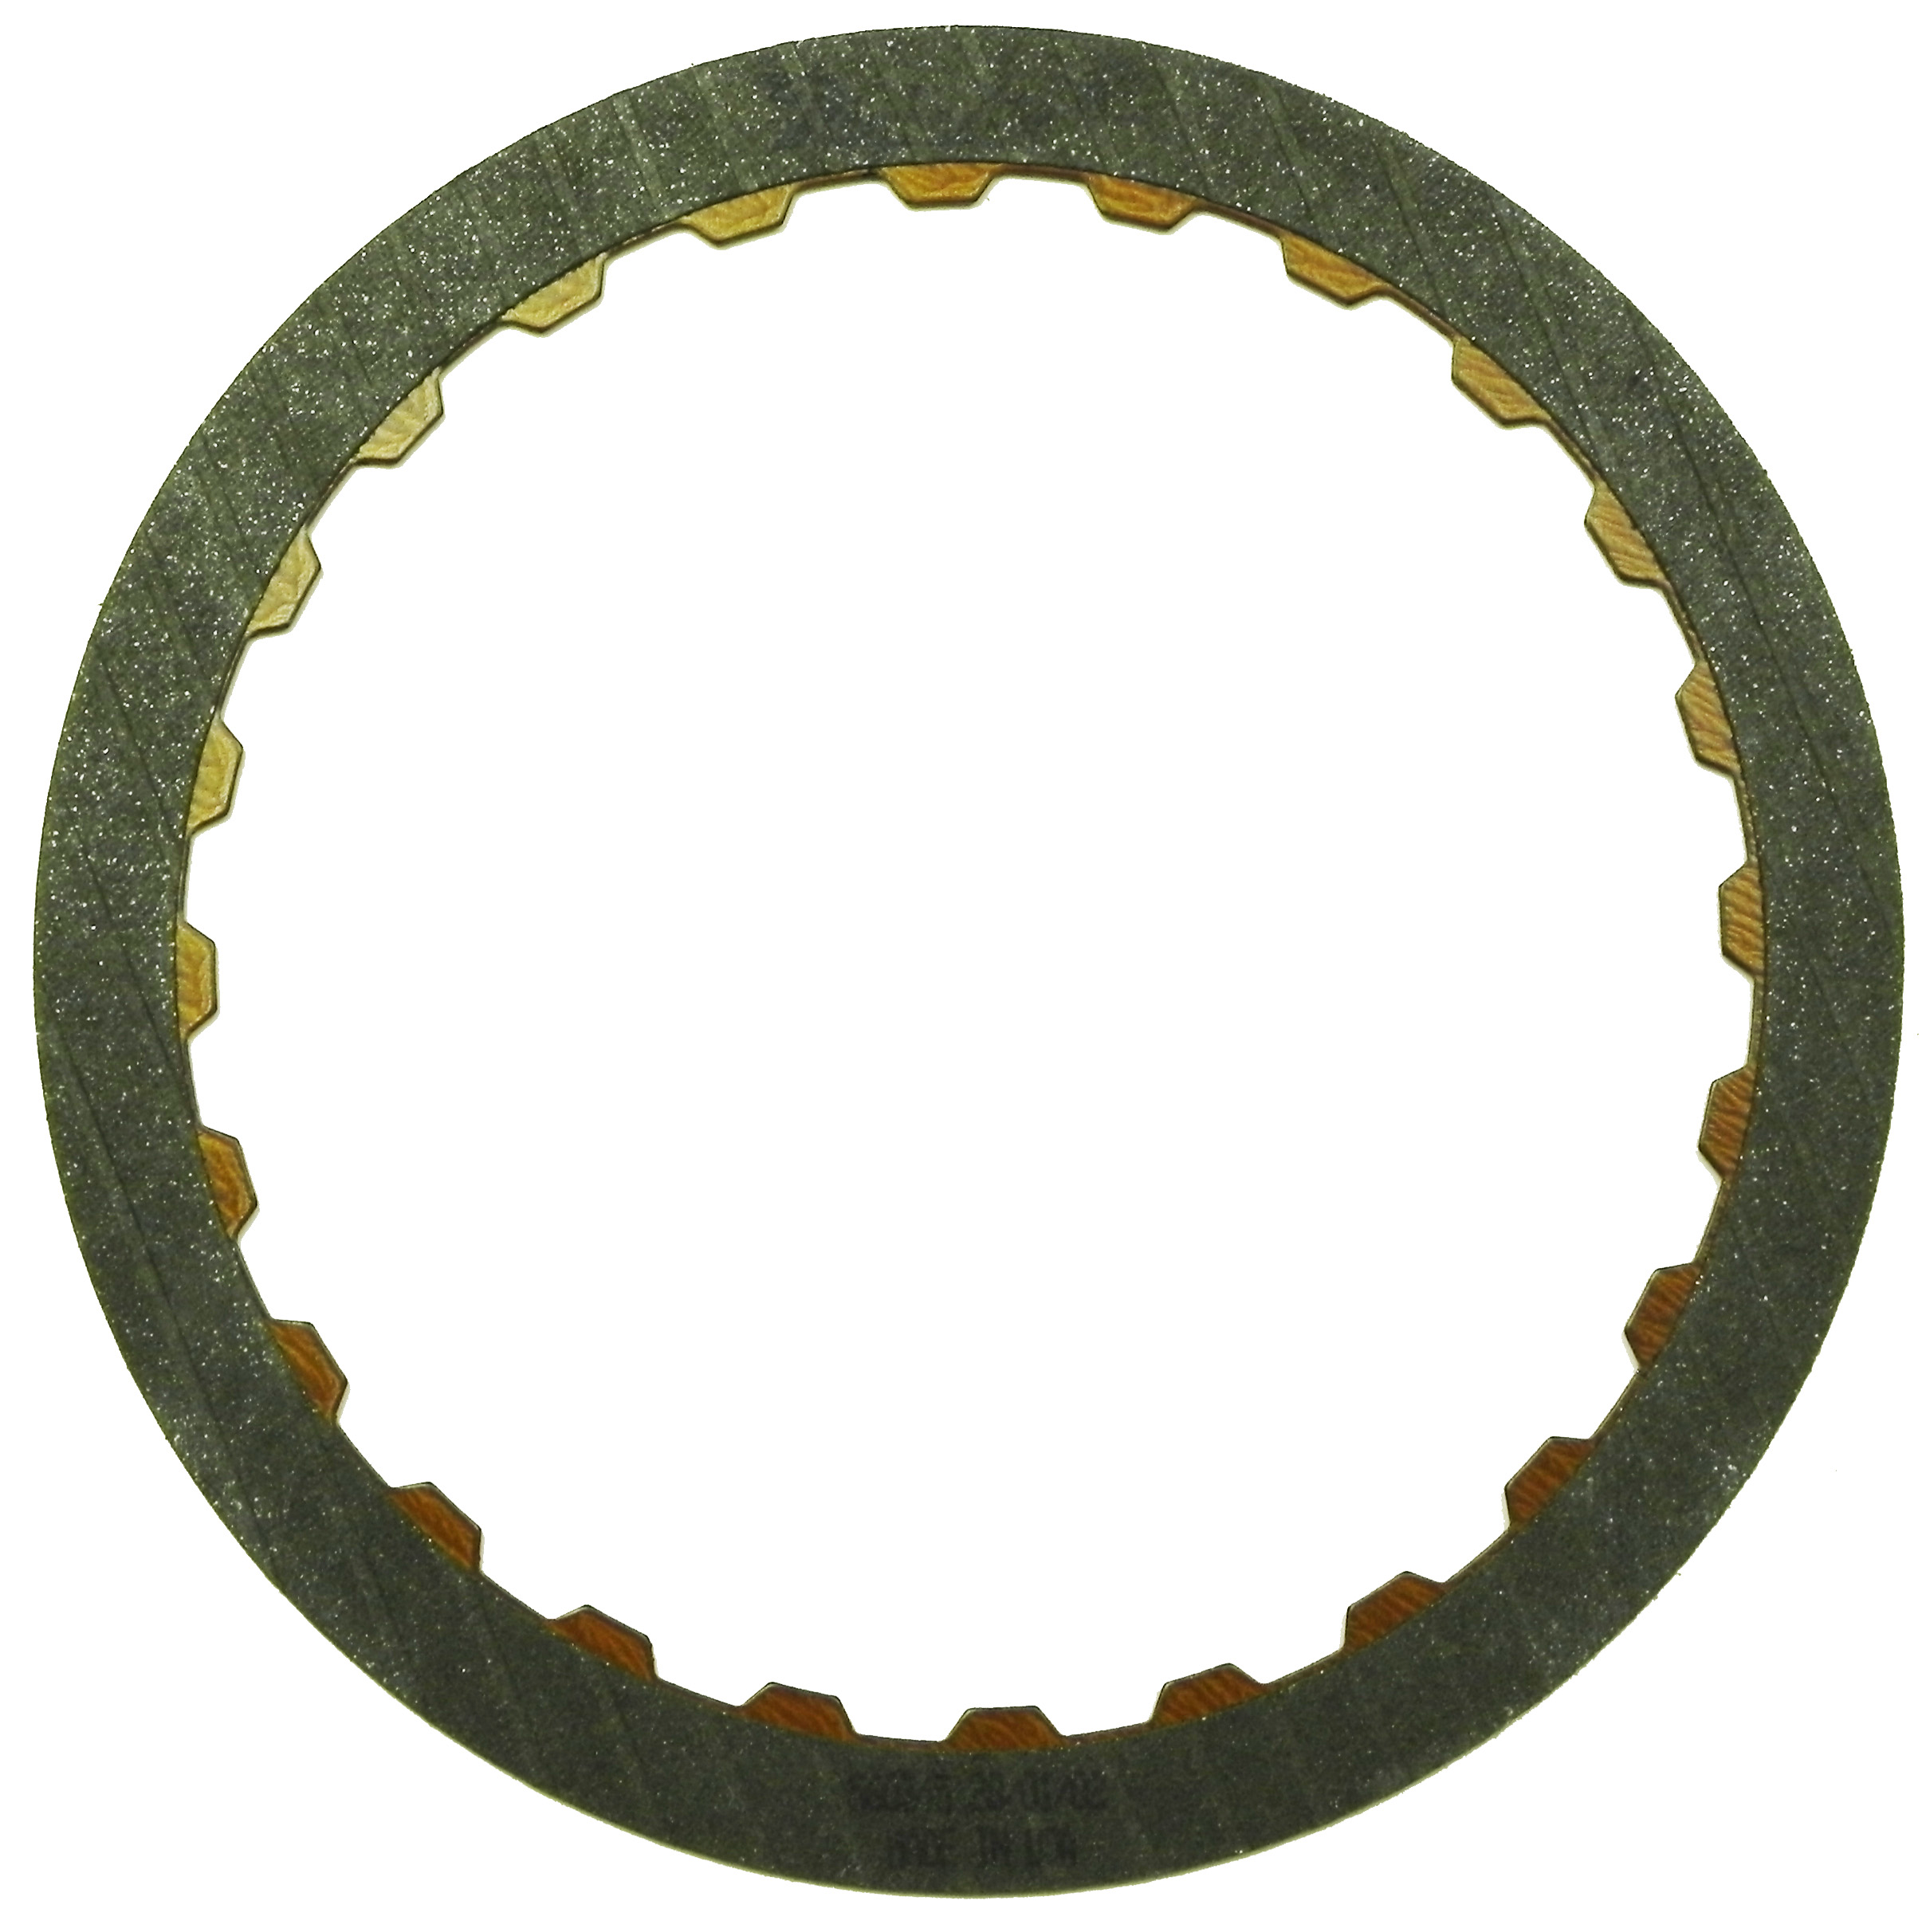 R560345 | 1990-2006 Friction Clutch Plate High Energy K1, K2 AG4 High Energy